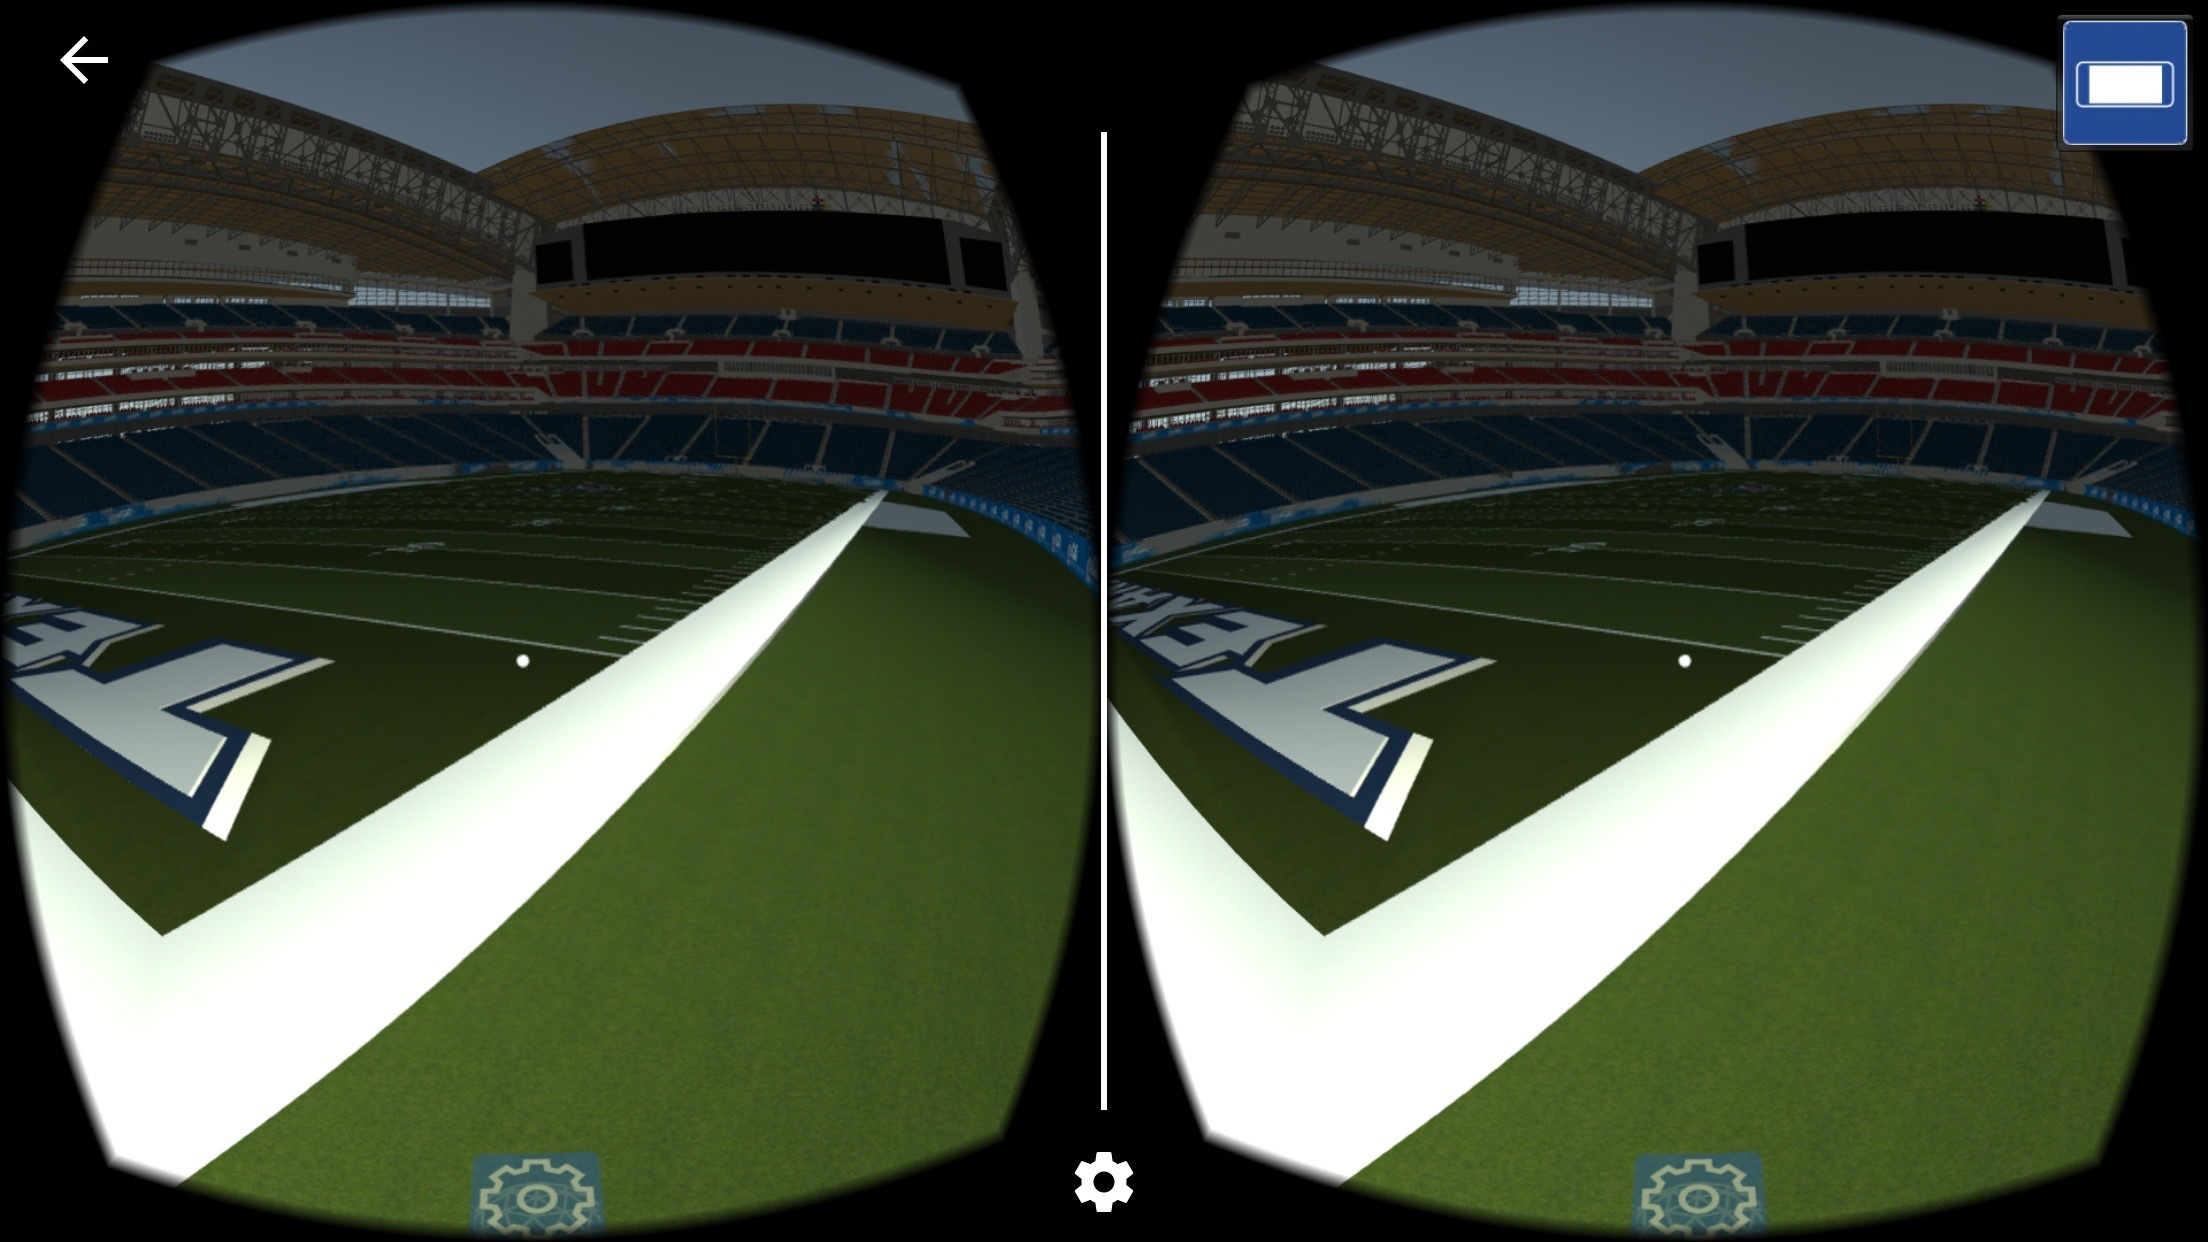 vCAD app users can walk on the Super Bowl LI field and get a view from any seat in the stadium, all in virtual reality. (Photo: Business Wire)